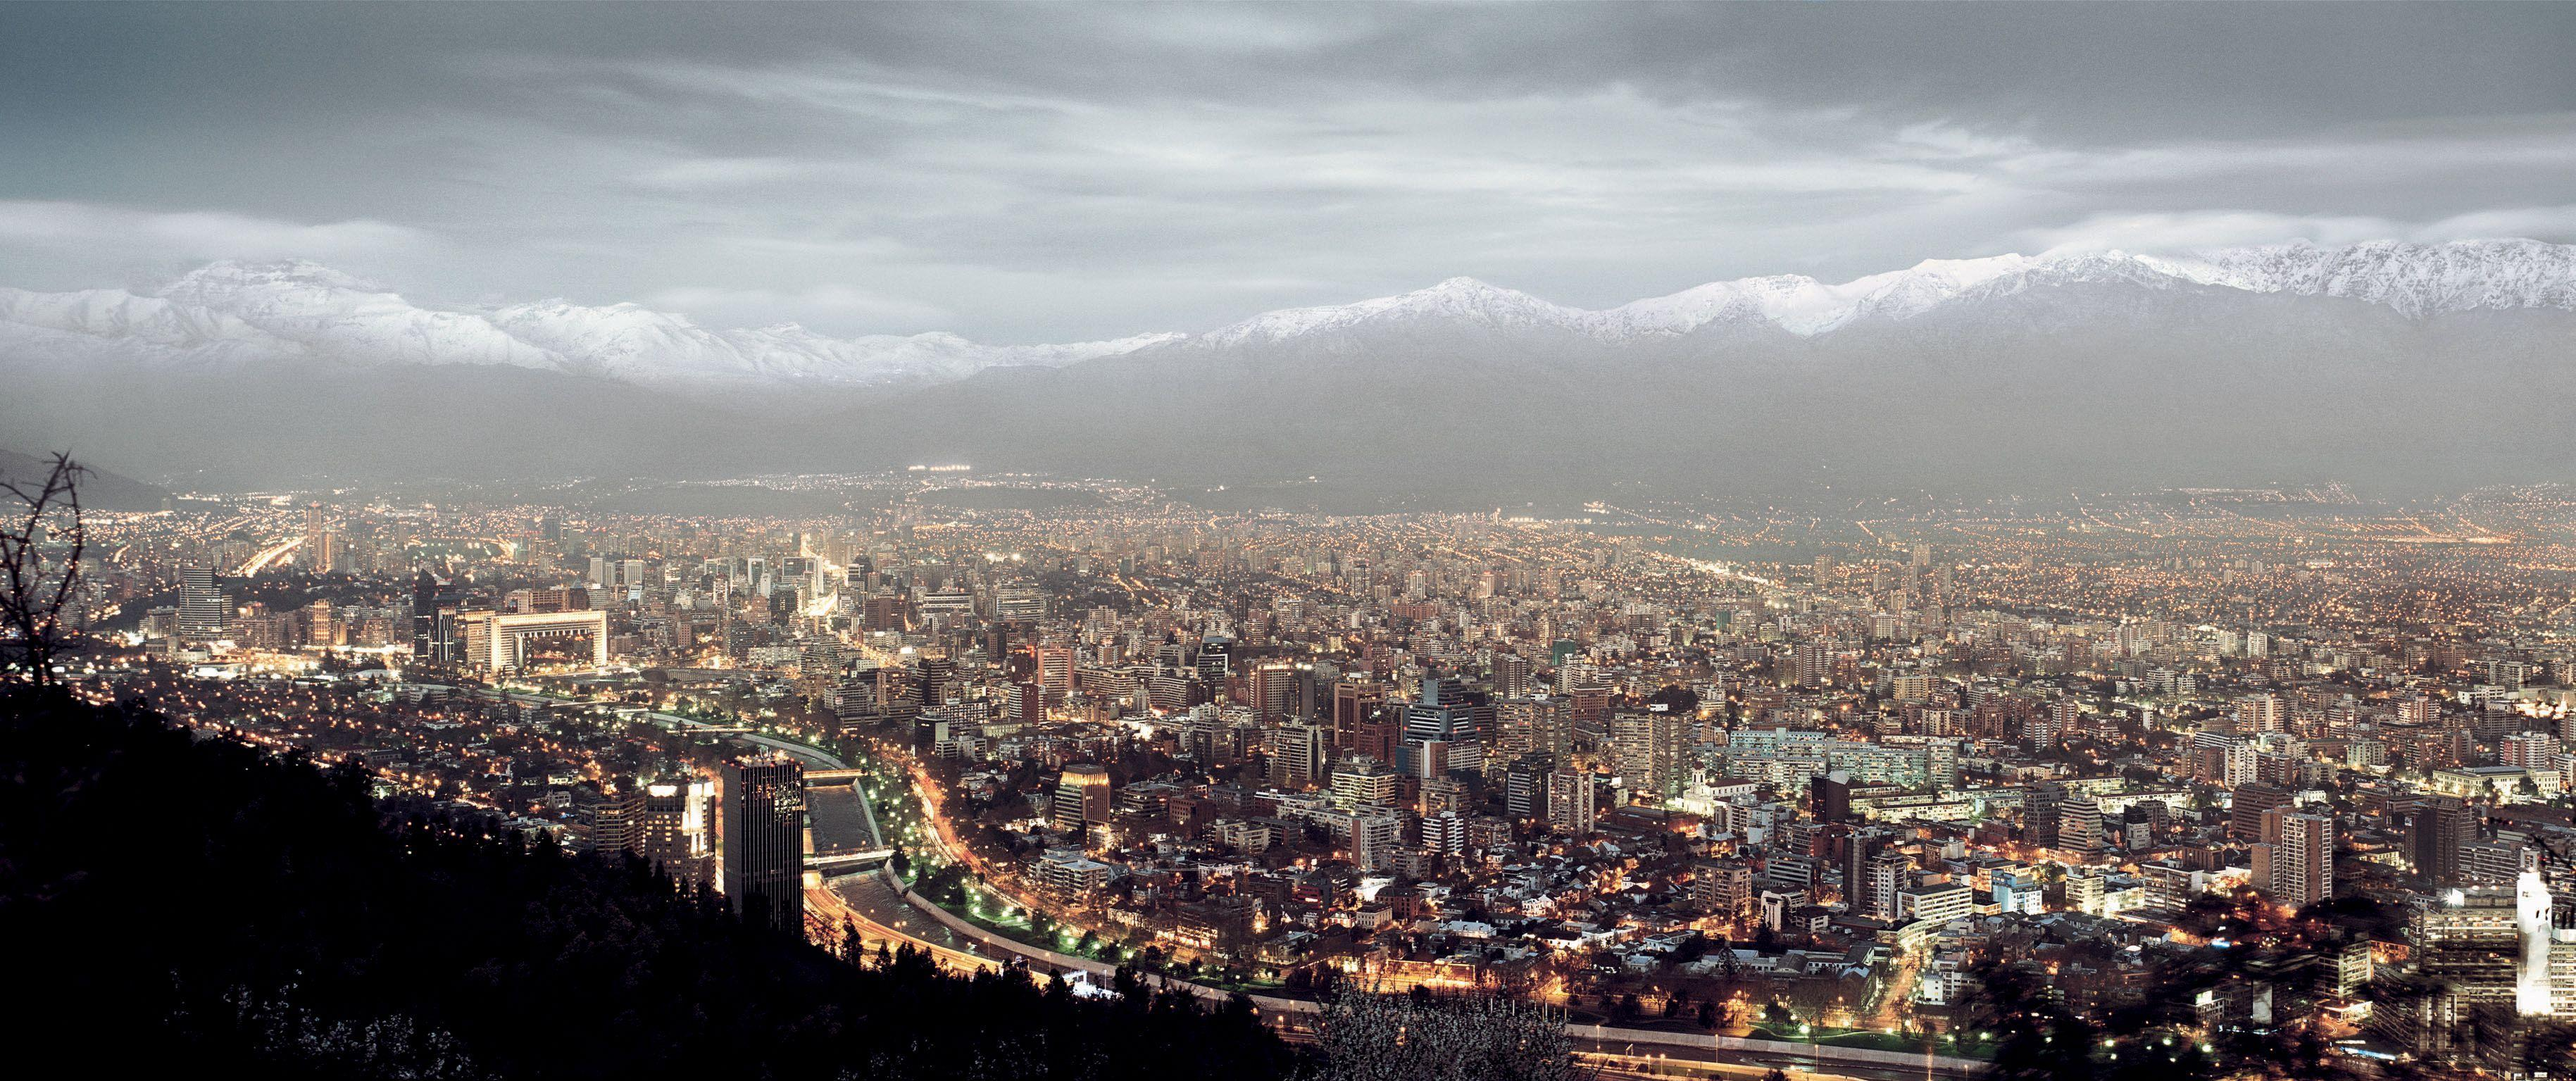 santiago chile high resolution #545255